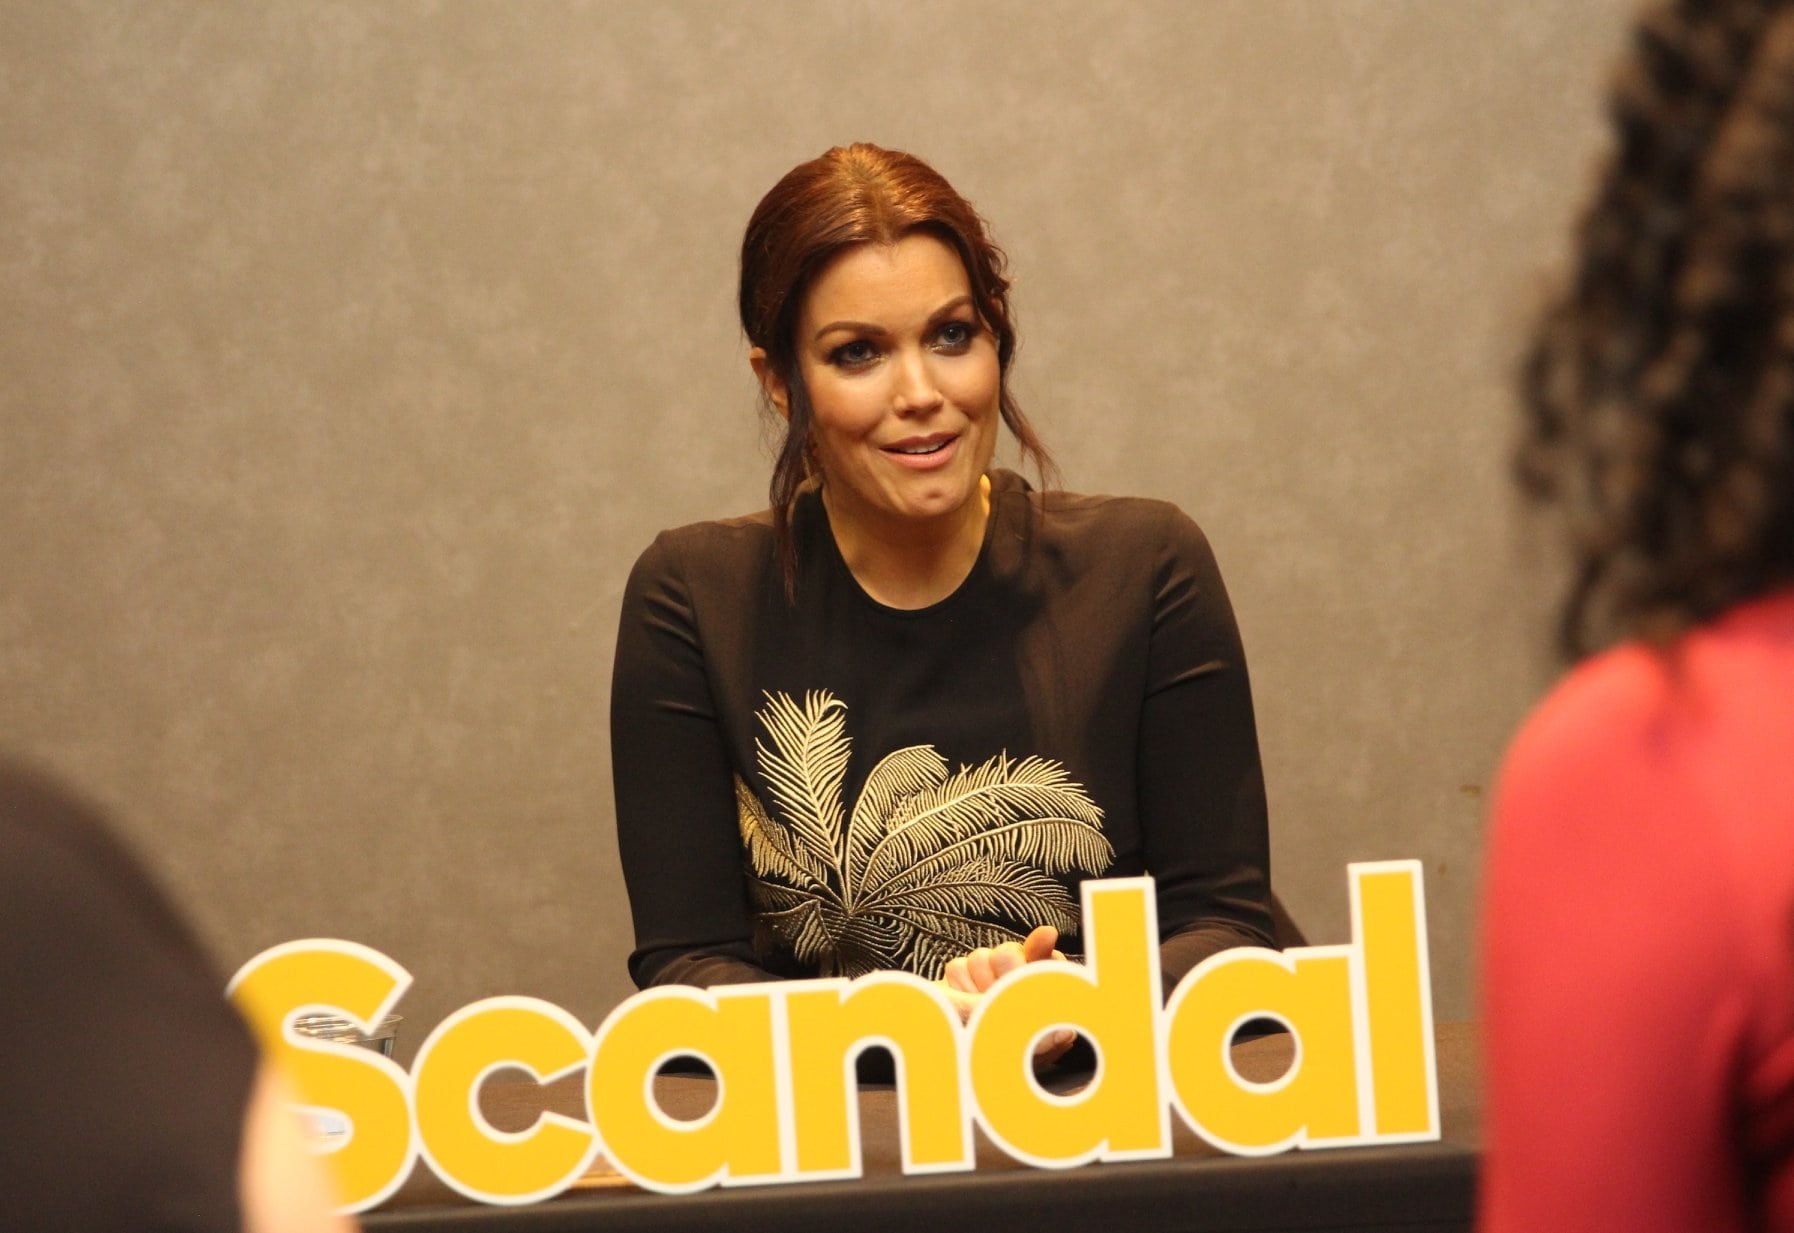 Interview with Bellamy Young about Scandal - simplytodaylife.com